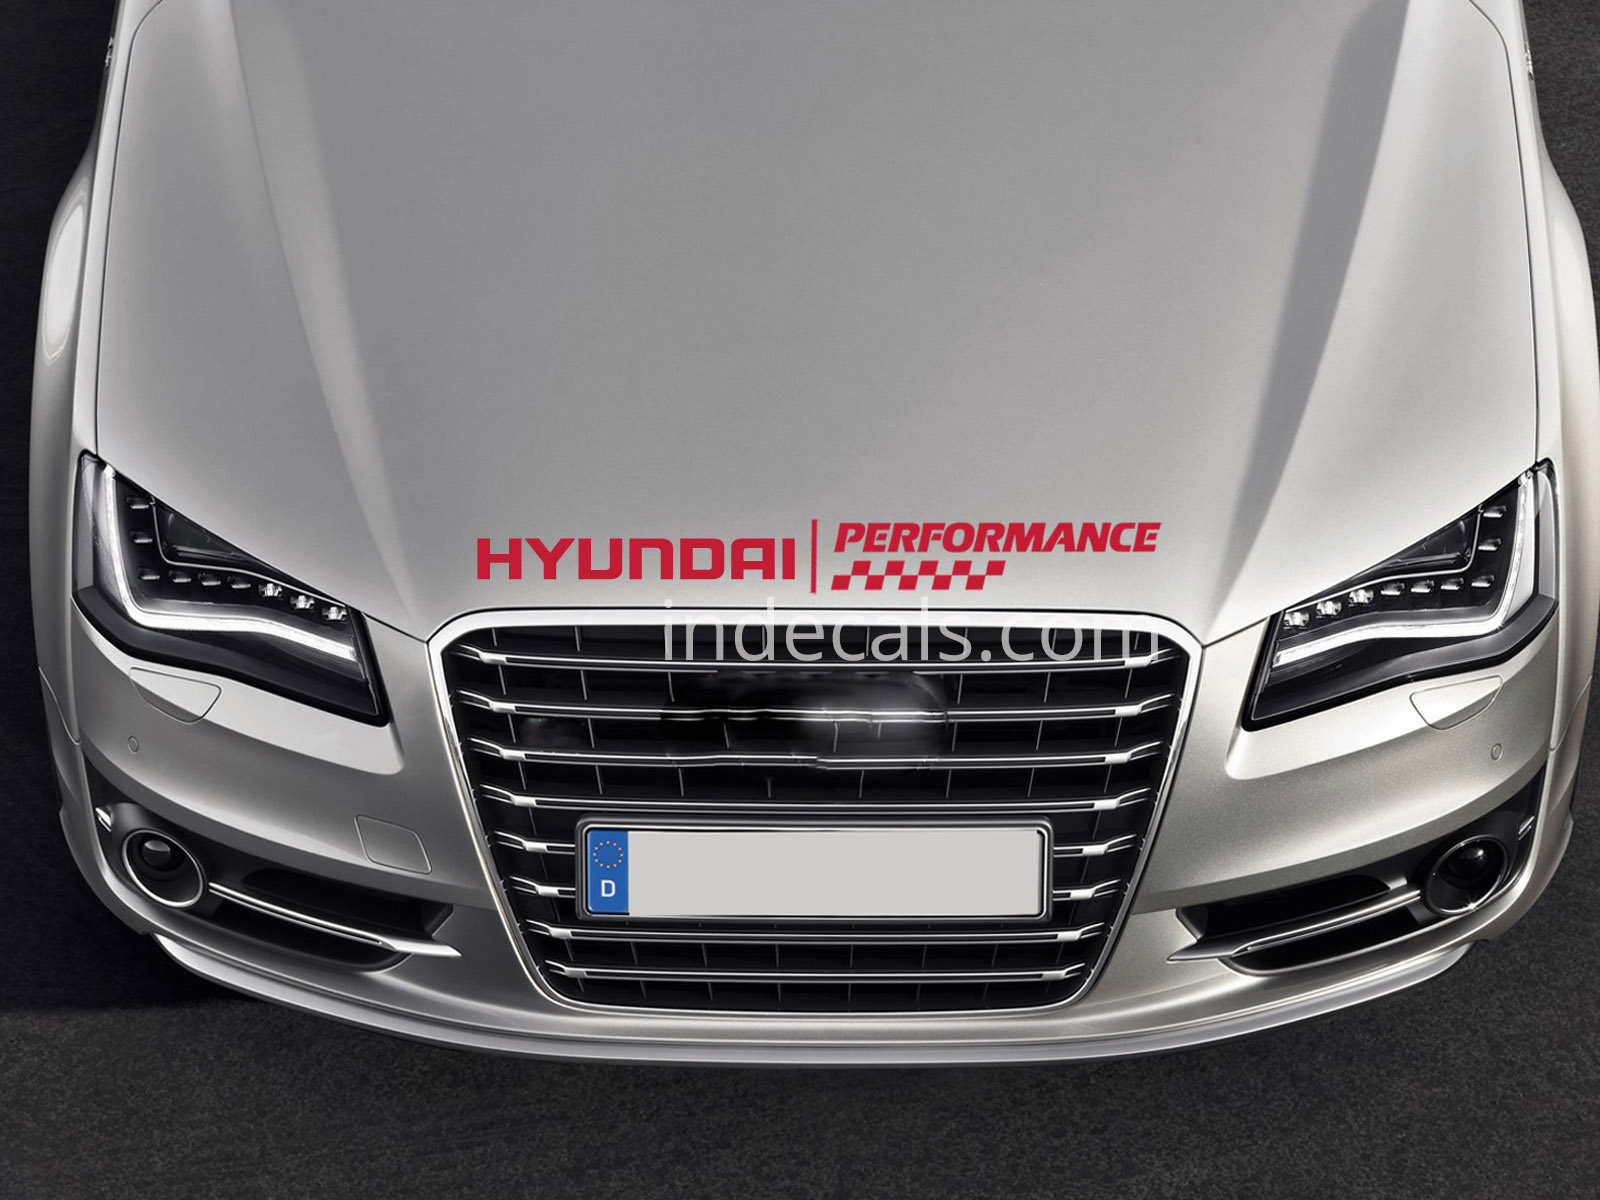 1 x Hyundai Performance Sticker for Bonnet - Red